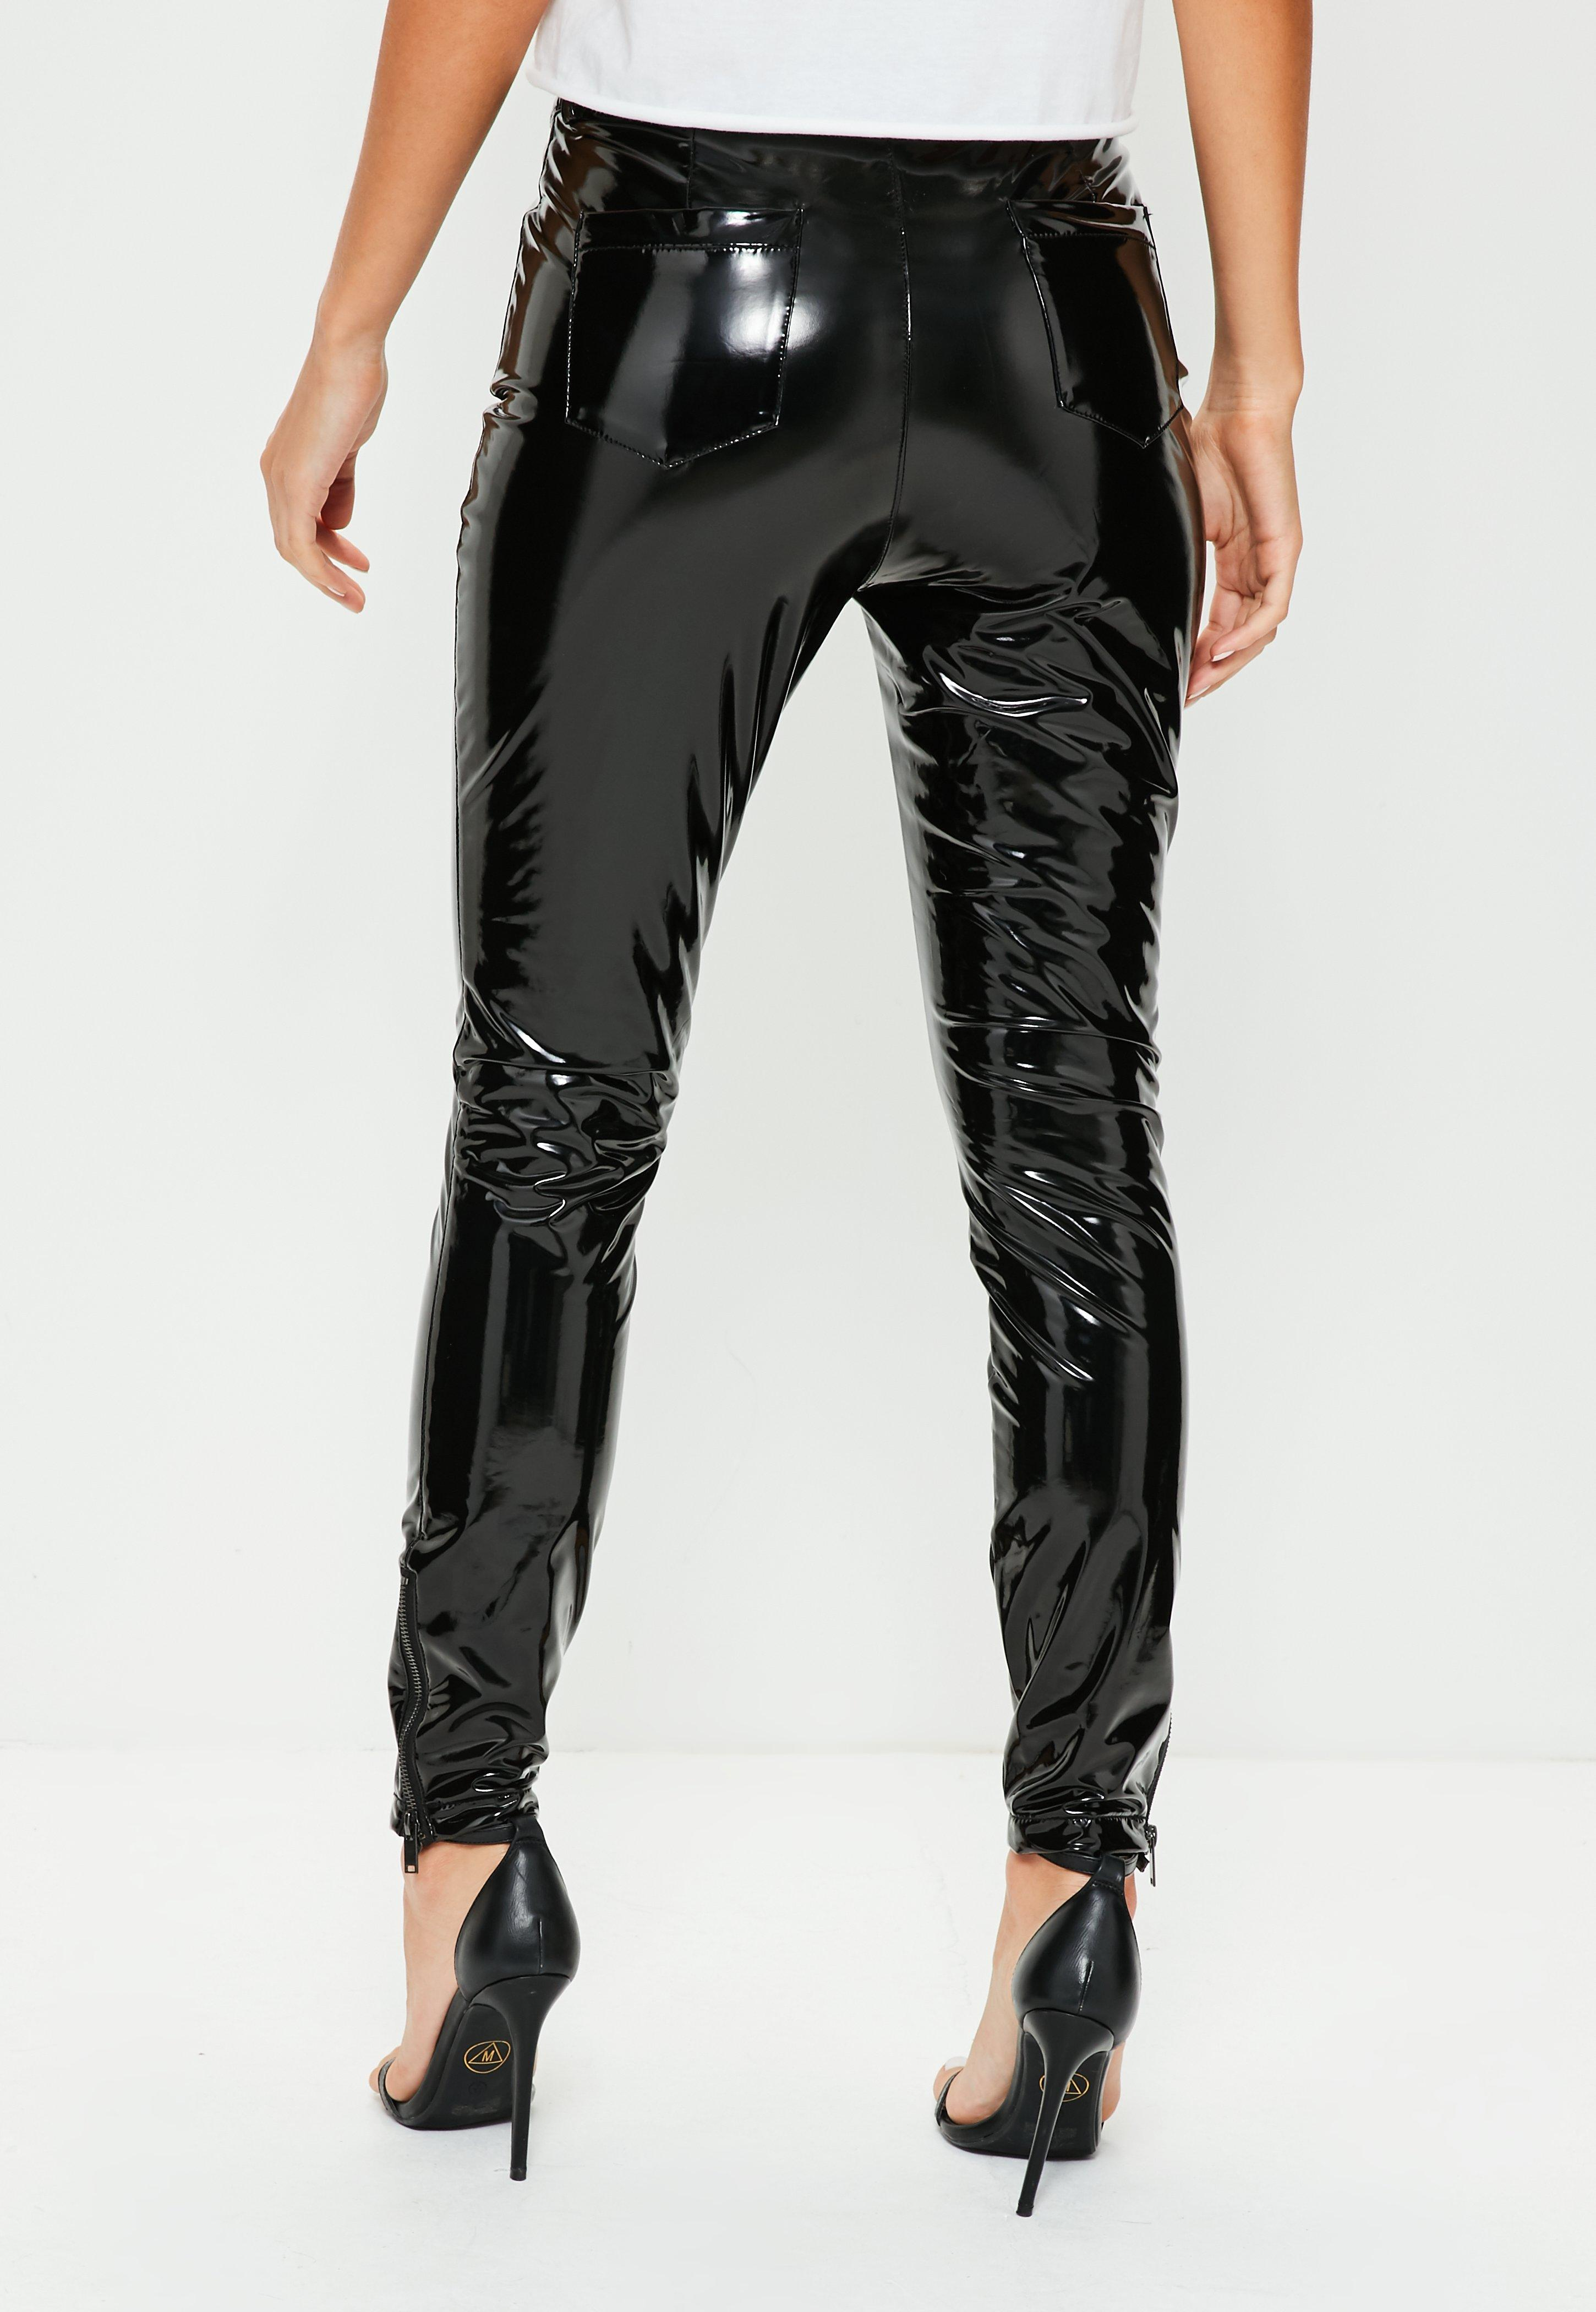 Top Pantalon legging noir brillant en simili cuir zippé | Missguided QR59